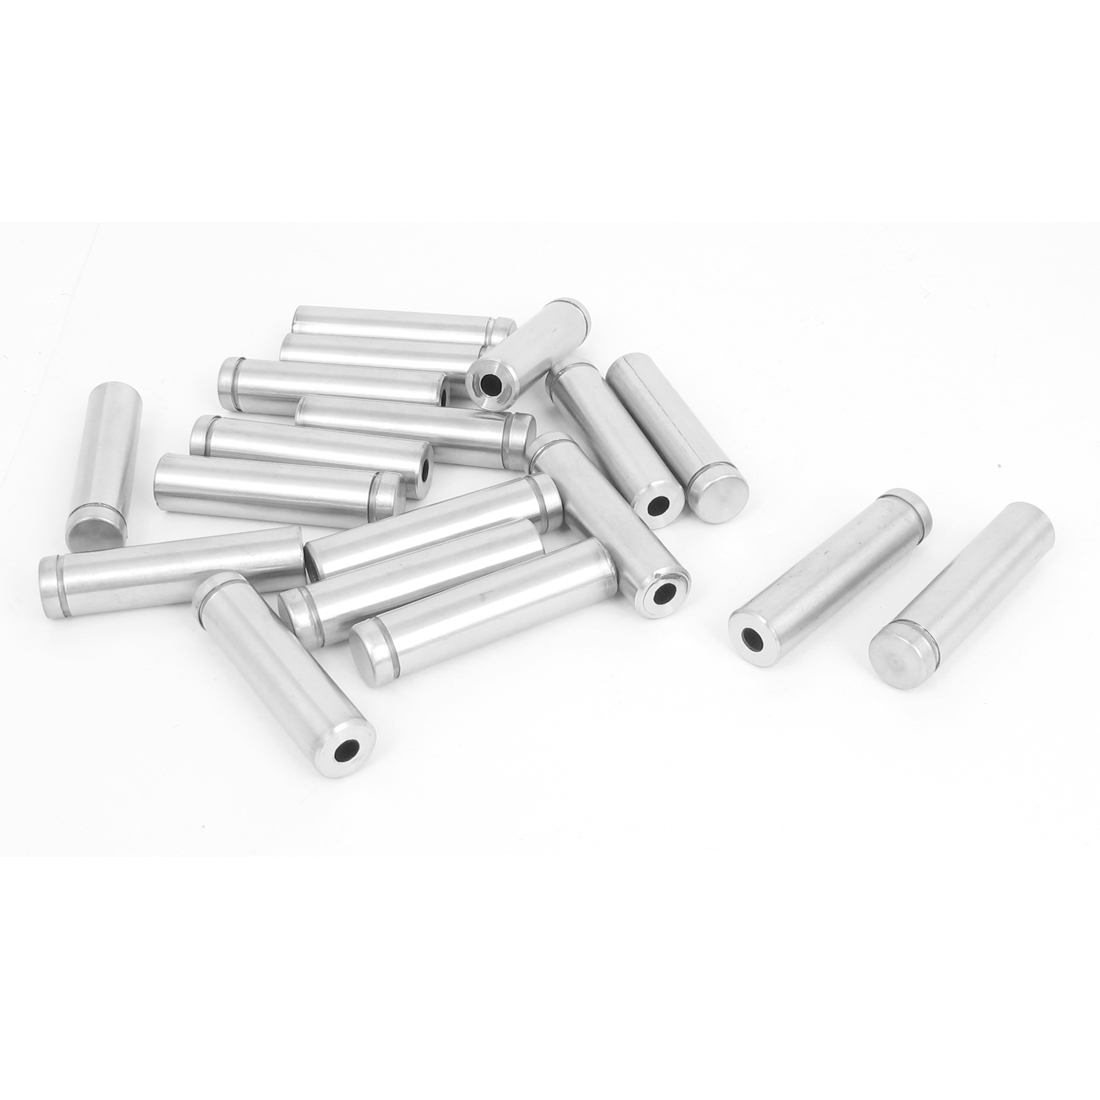 12mm x 50mm Stainless Steel Advertising Frameless Glass Standoff Pins 18pcs